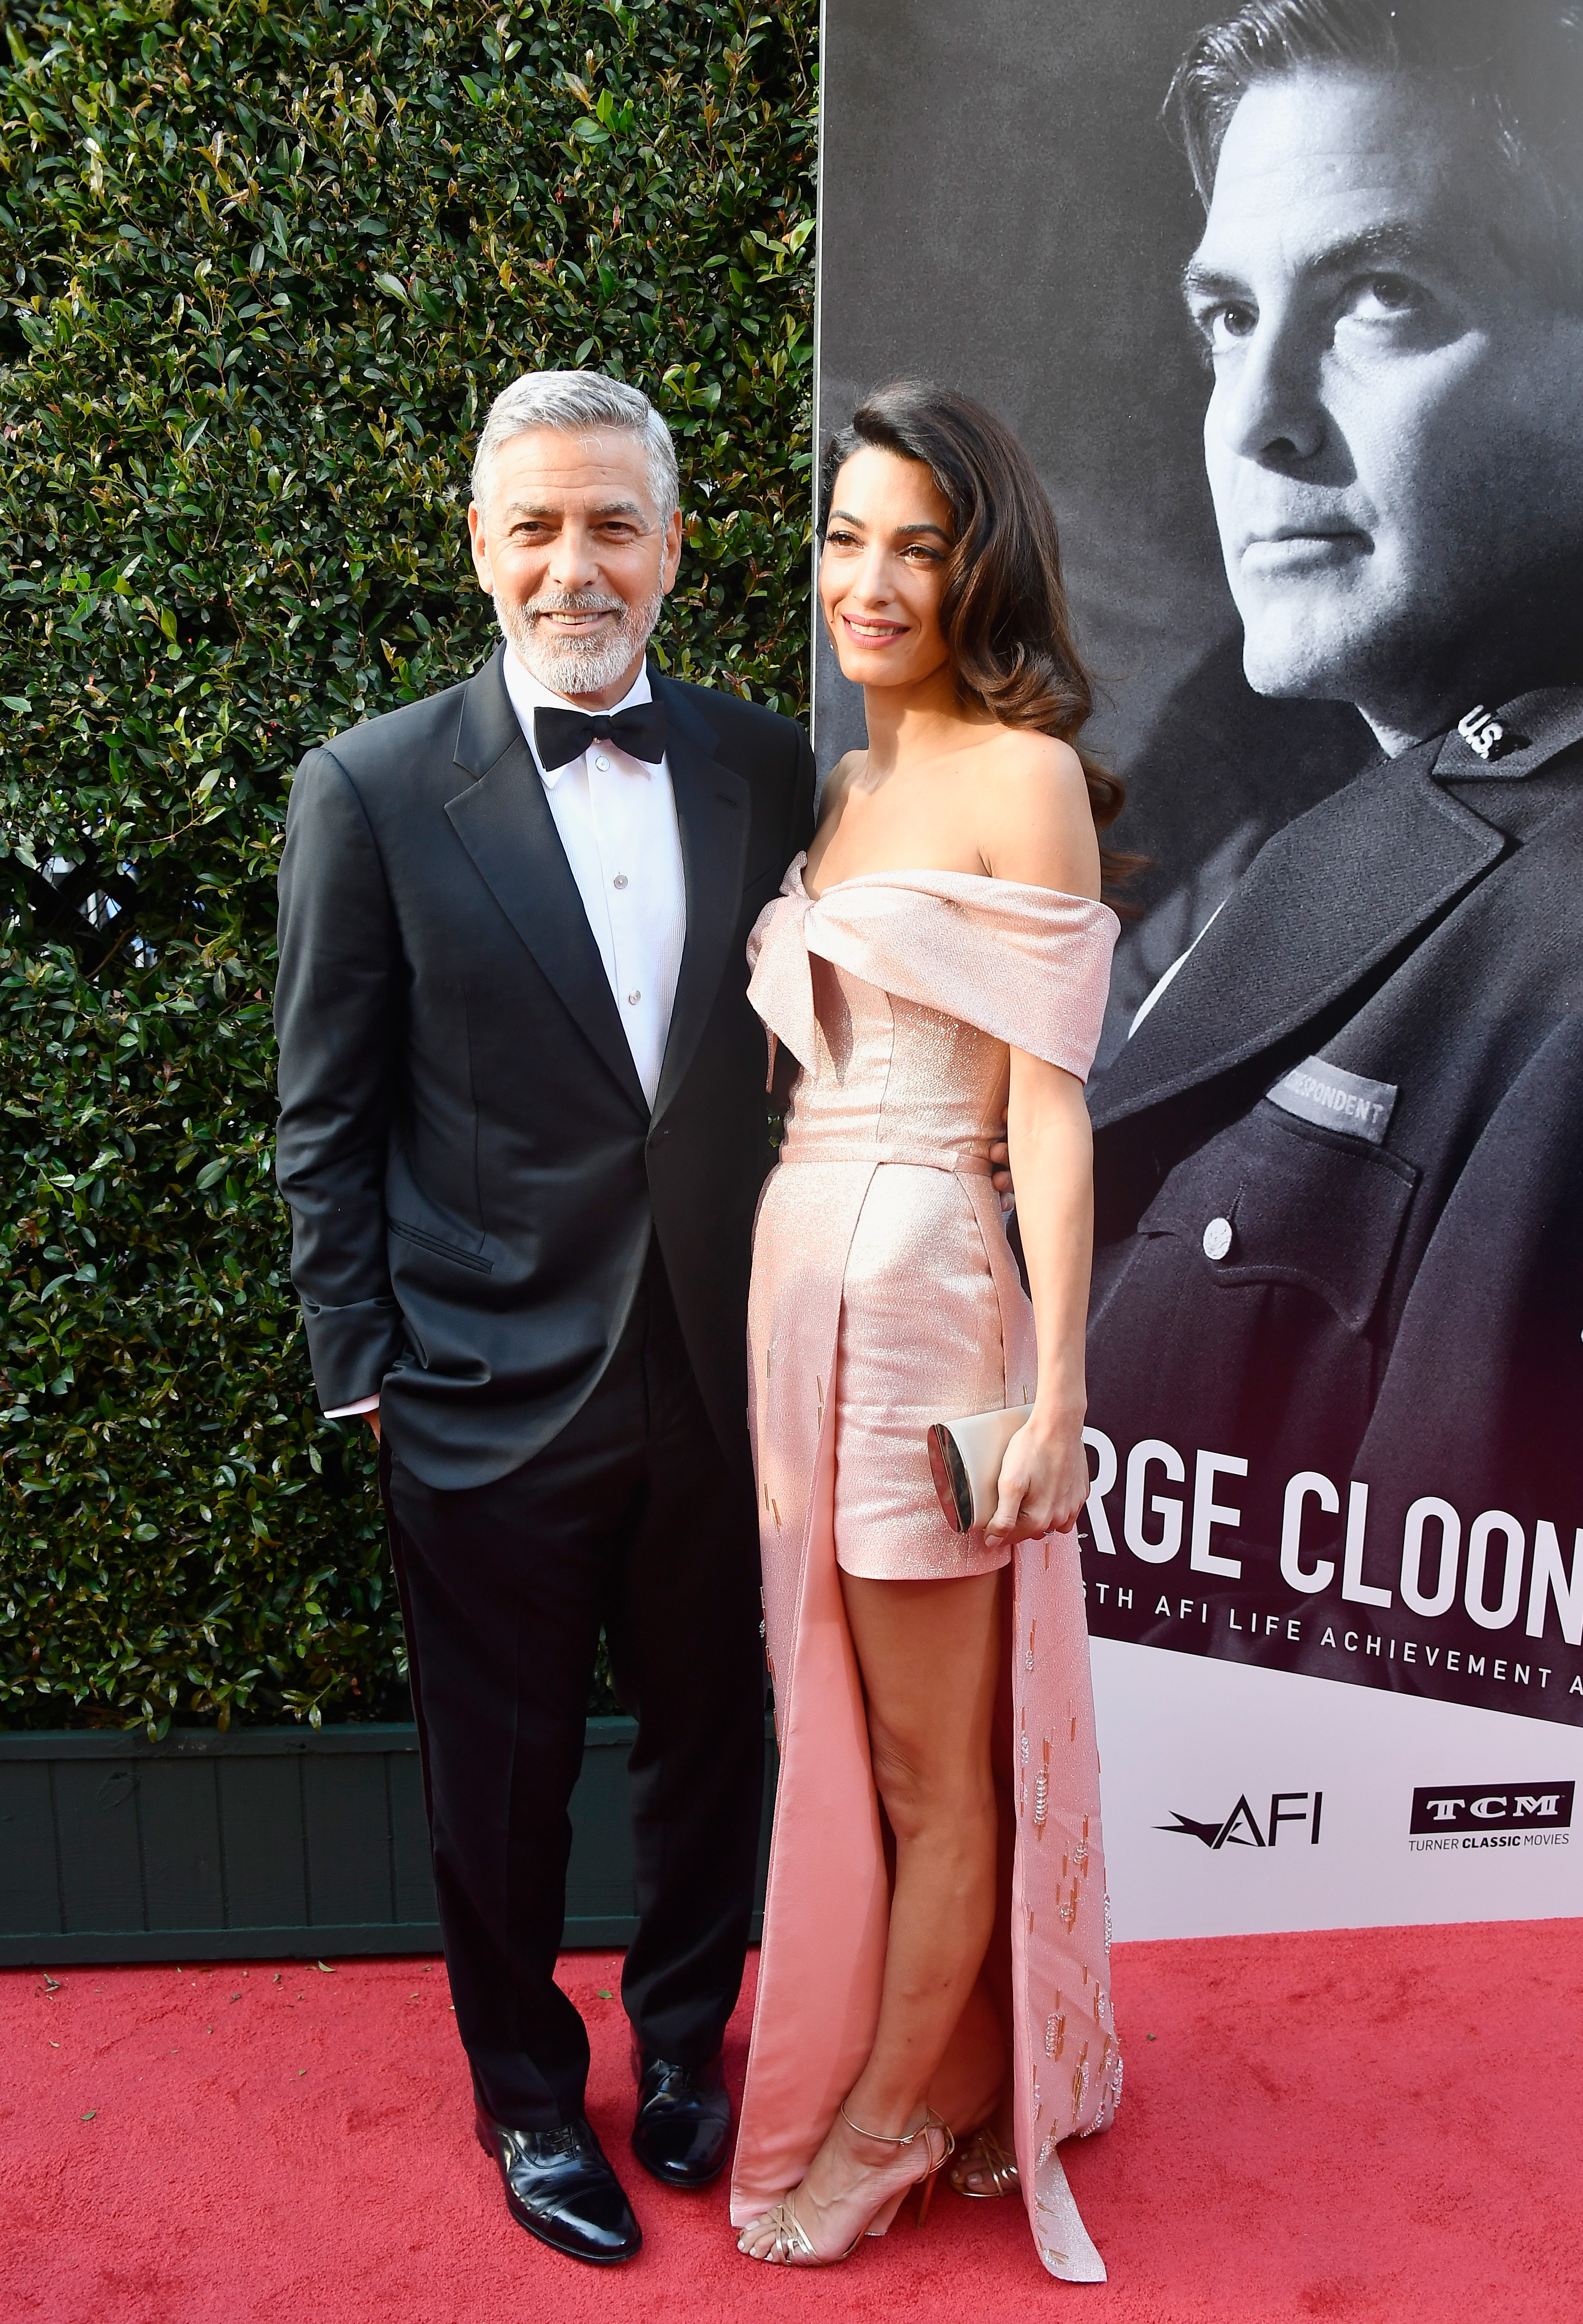 """<p>The A-list have taken to the red carpet to celebrate George Clooney at the American Film Institute's 46th Life Achievement Award Gala.</p> <p>The actor was honoured for his contribution to the film industry, and there was no mistaking the night was all about Clooney and his wife,<a href=""""https://style.nine.com.au/2018/04/06/13/51/amal-clooney-trench-coat-megahn-markle"""" target=""""_blank"""" draggable=""""false""""> Amal.</a></p> <p>George in aclassic tuxedo, while Amal shone in a metallic pink off the shoulder gown, the pair demanded attention from the moment they arrived, cementing their place as the power couple they are.</p> <p>They were joined by a bevvy of Hollywood stars such as Jennifer Aniston who arrived with bestie Courteney Cox, and Cate Blanchett, who lifted the style stakes once again in Aouadi Paris.</p> <p>Click through to take a look at the night's sartorial standouts.</p> <p></p> <p></p> <p></p> <p></p>"""